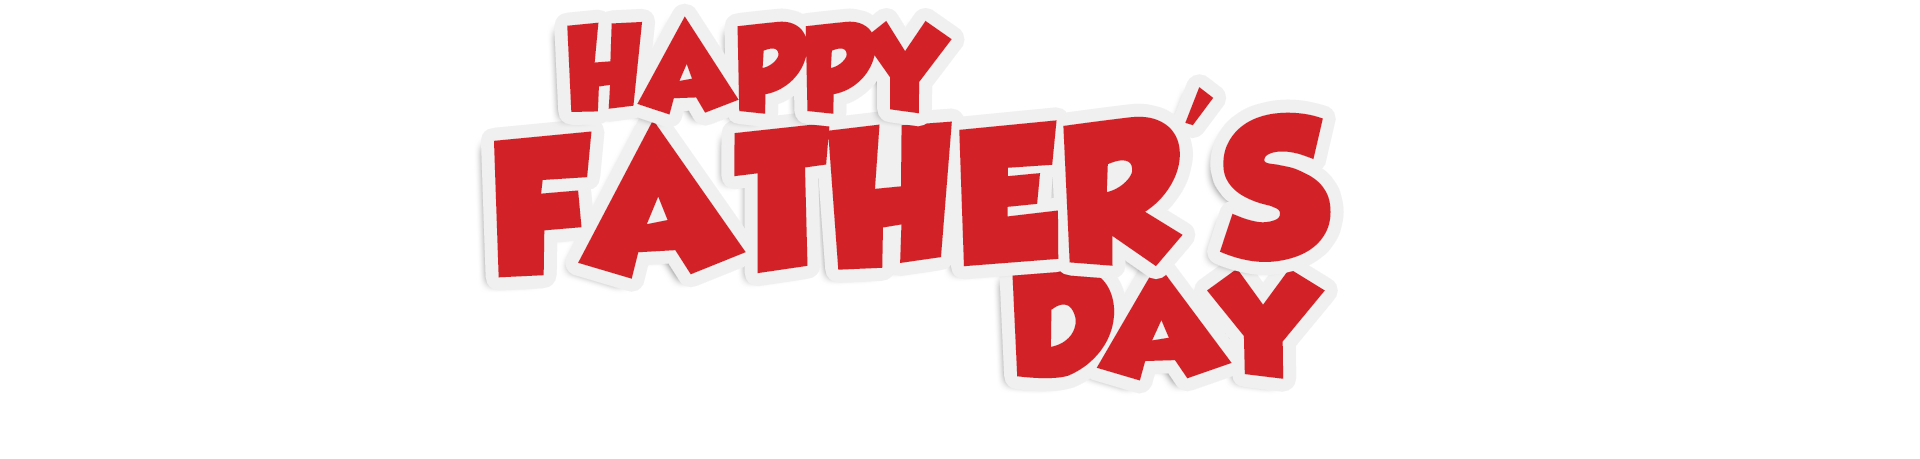 Fathers Day HD PNG Transparent Fathers Day HD.PNG Images..